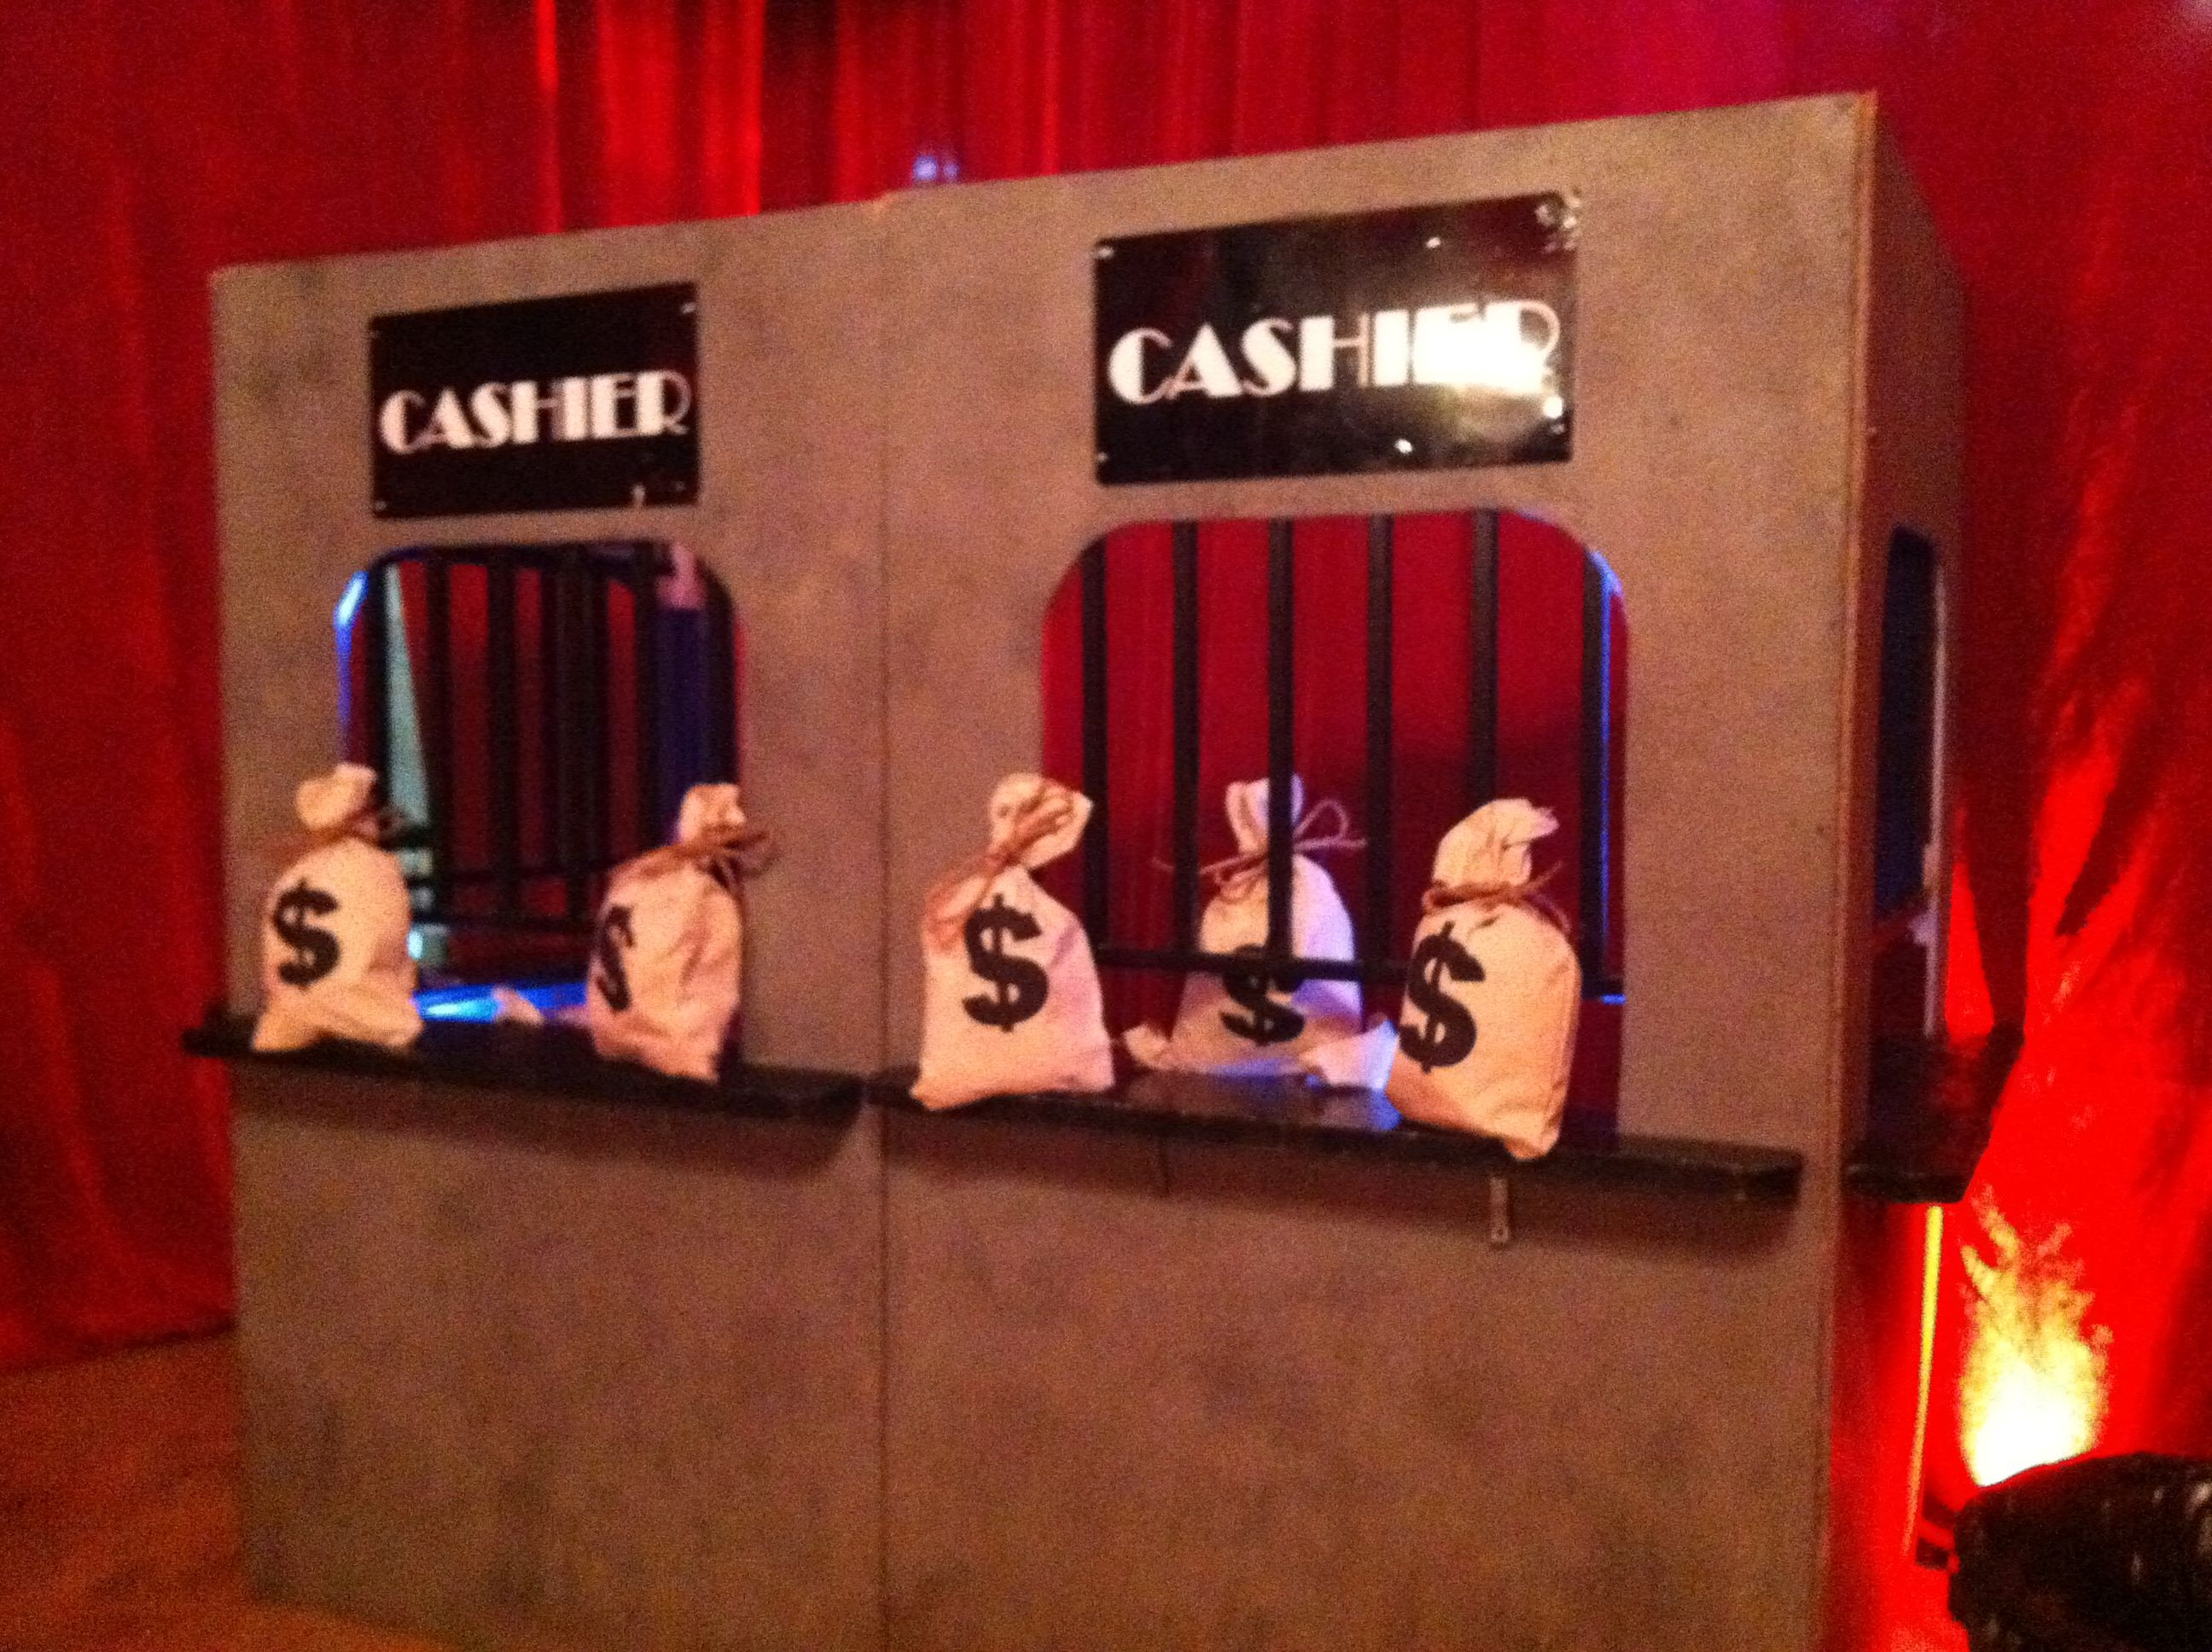 cashier cage prop for casino event  tottevents com in 2019